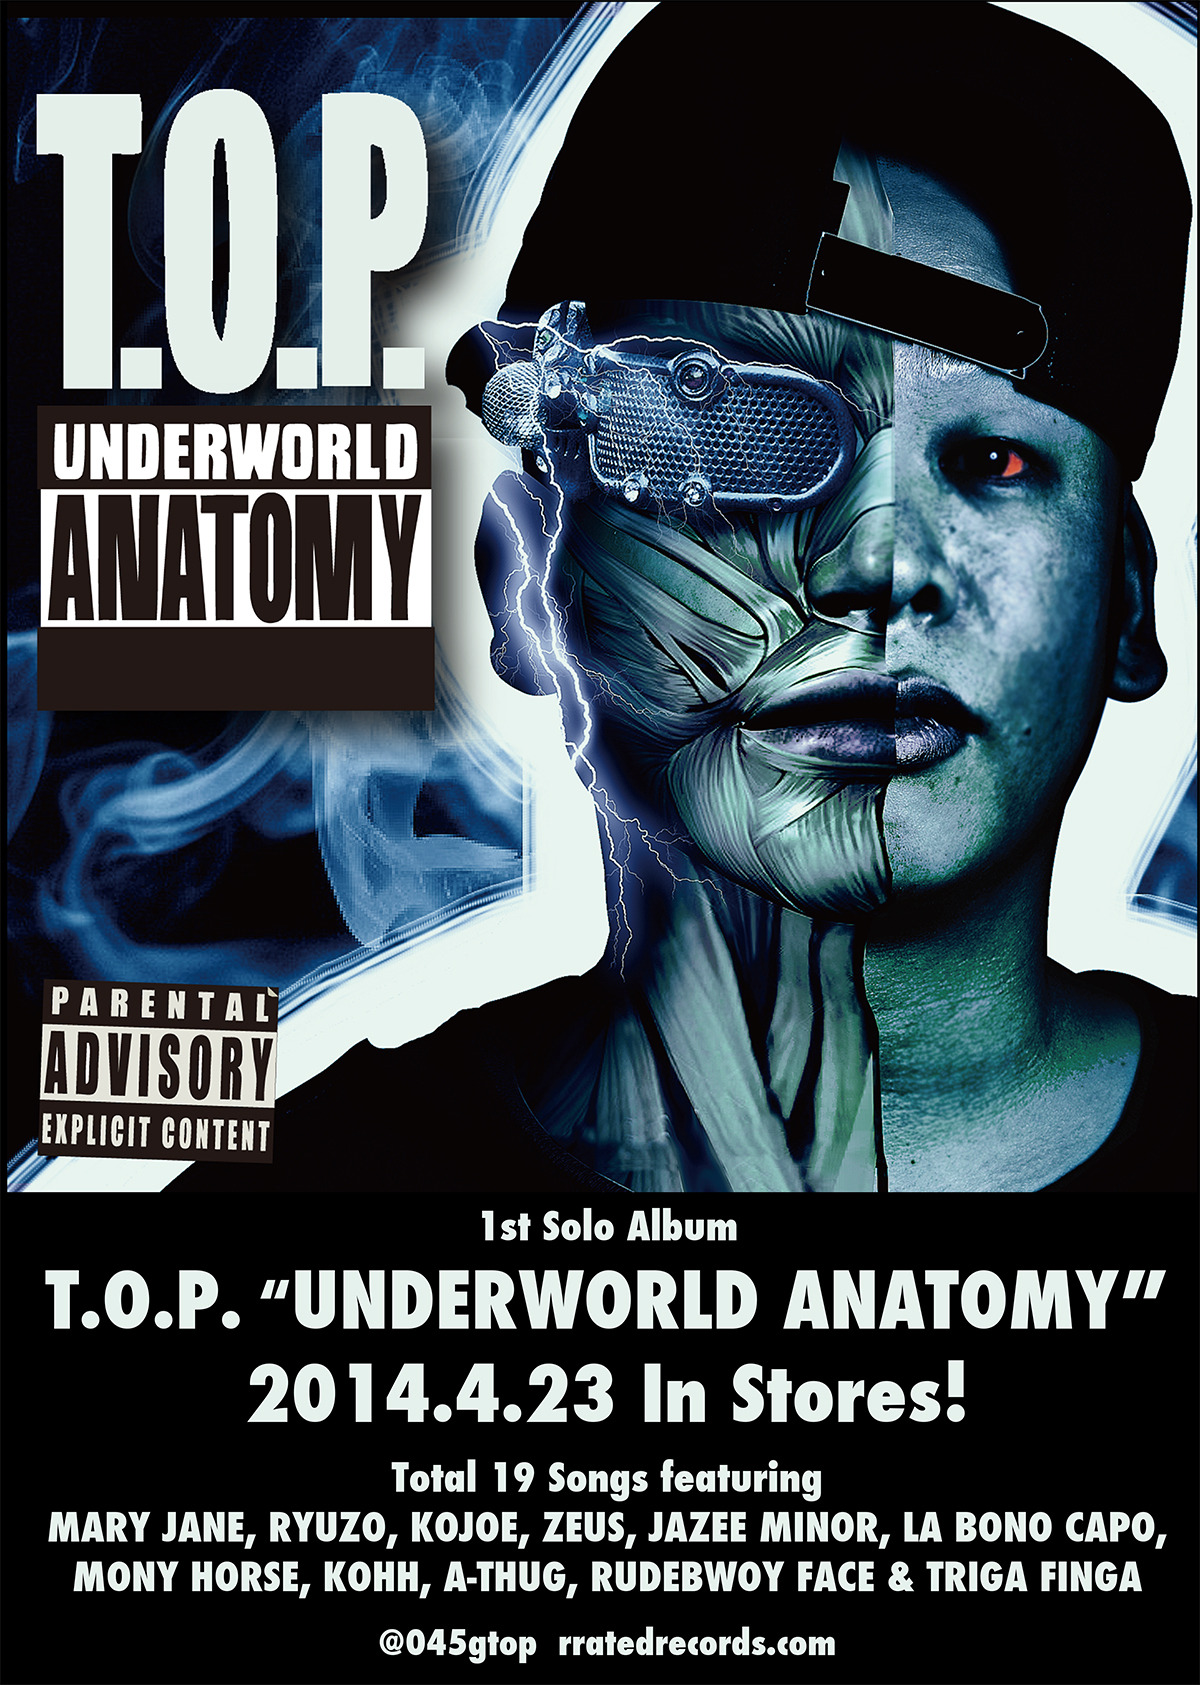 T.O.P. - UNDERWORLD ANATOMY ポスター